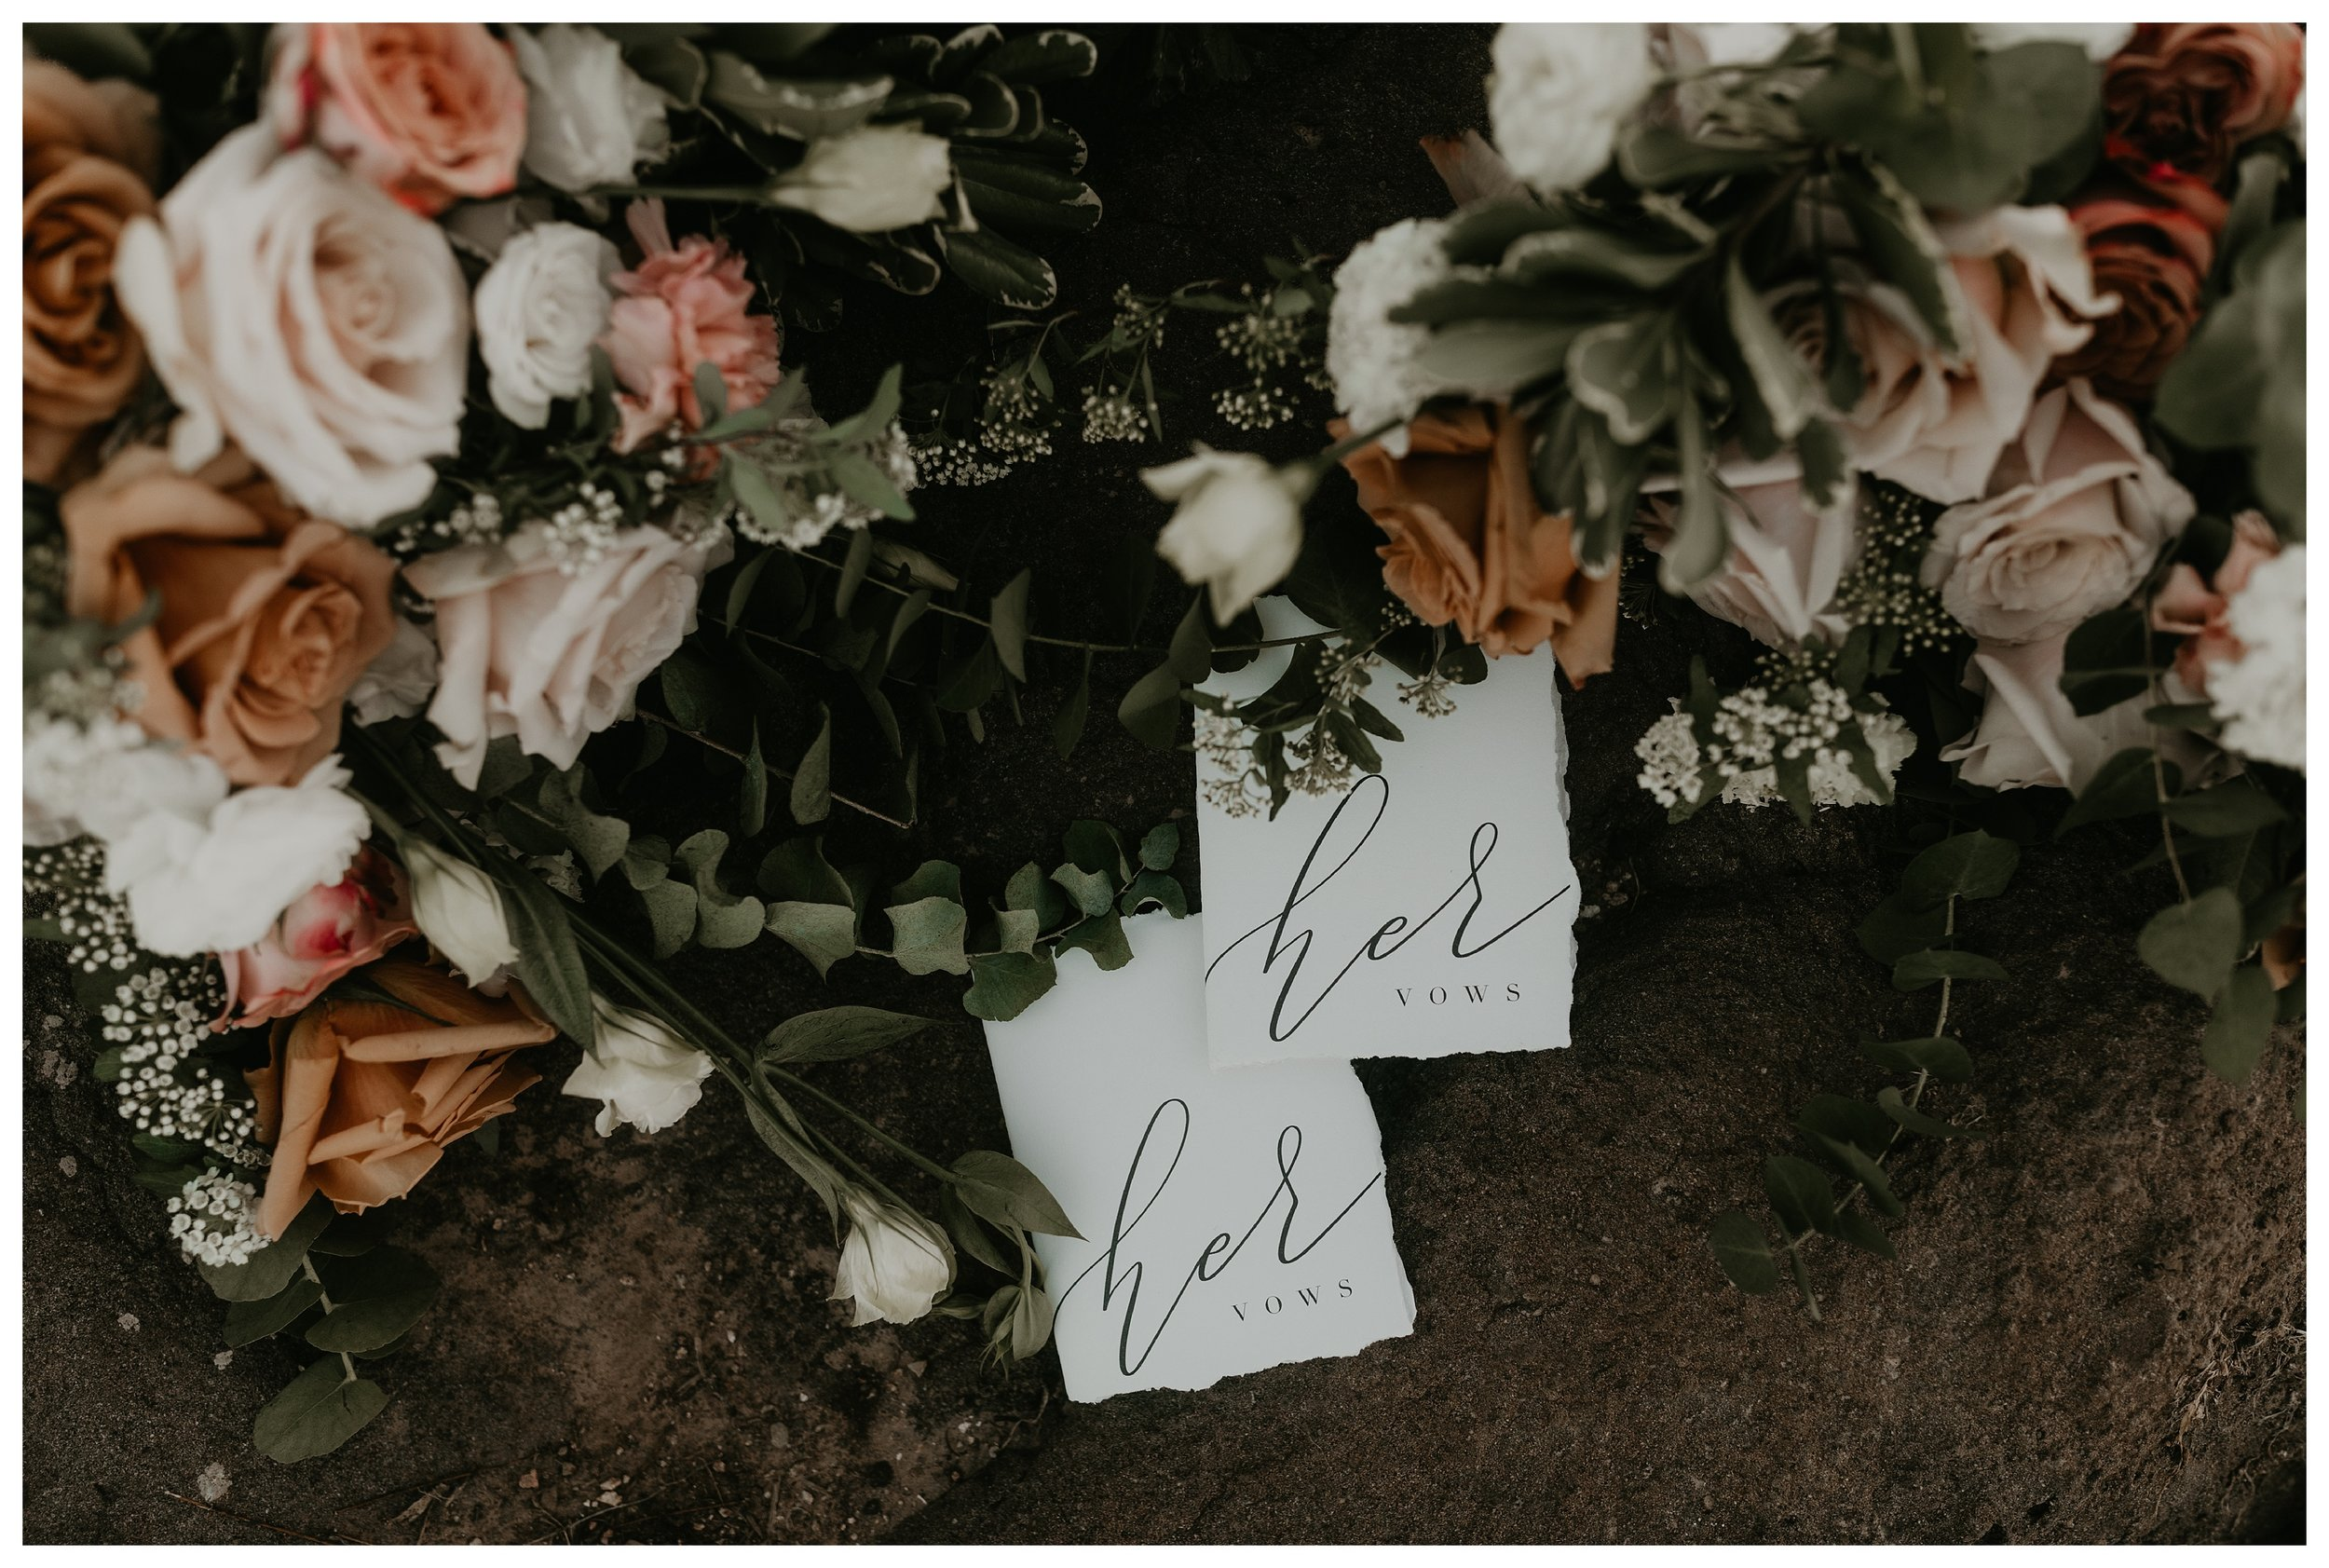 her wedding vow books with light pink and tan florals